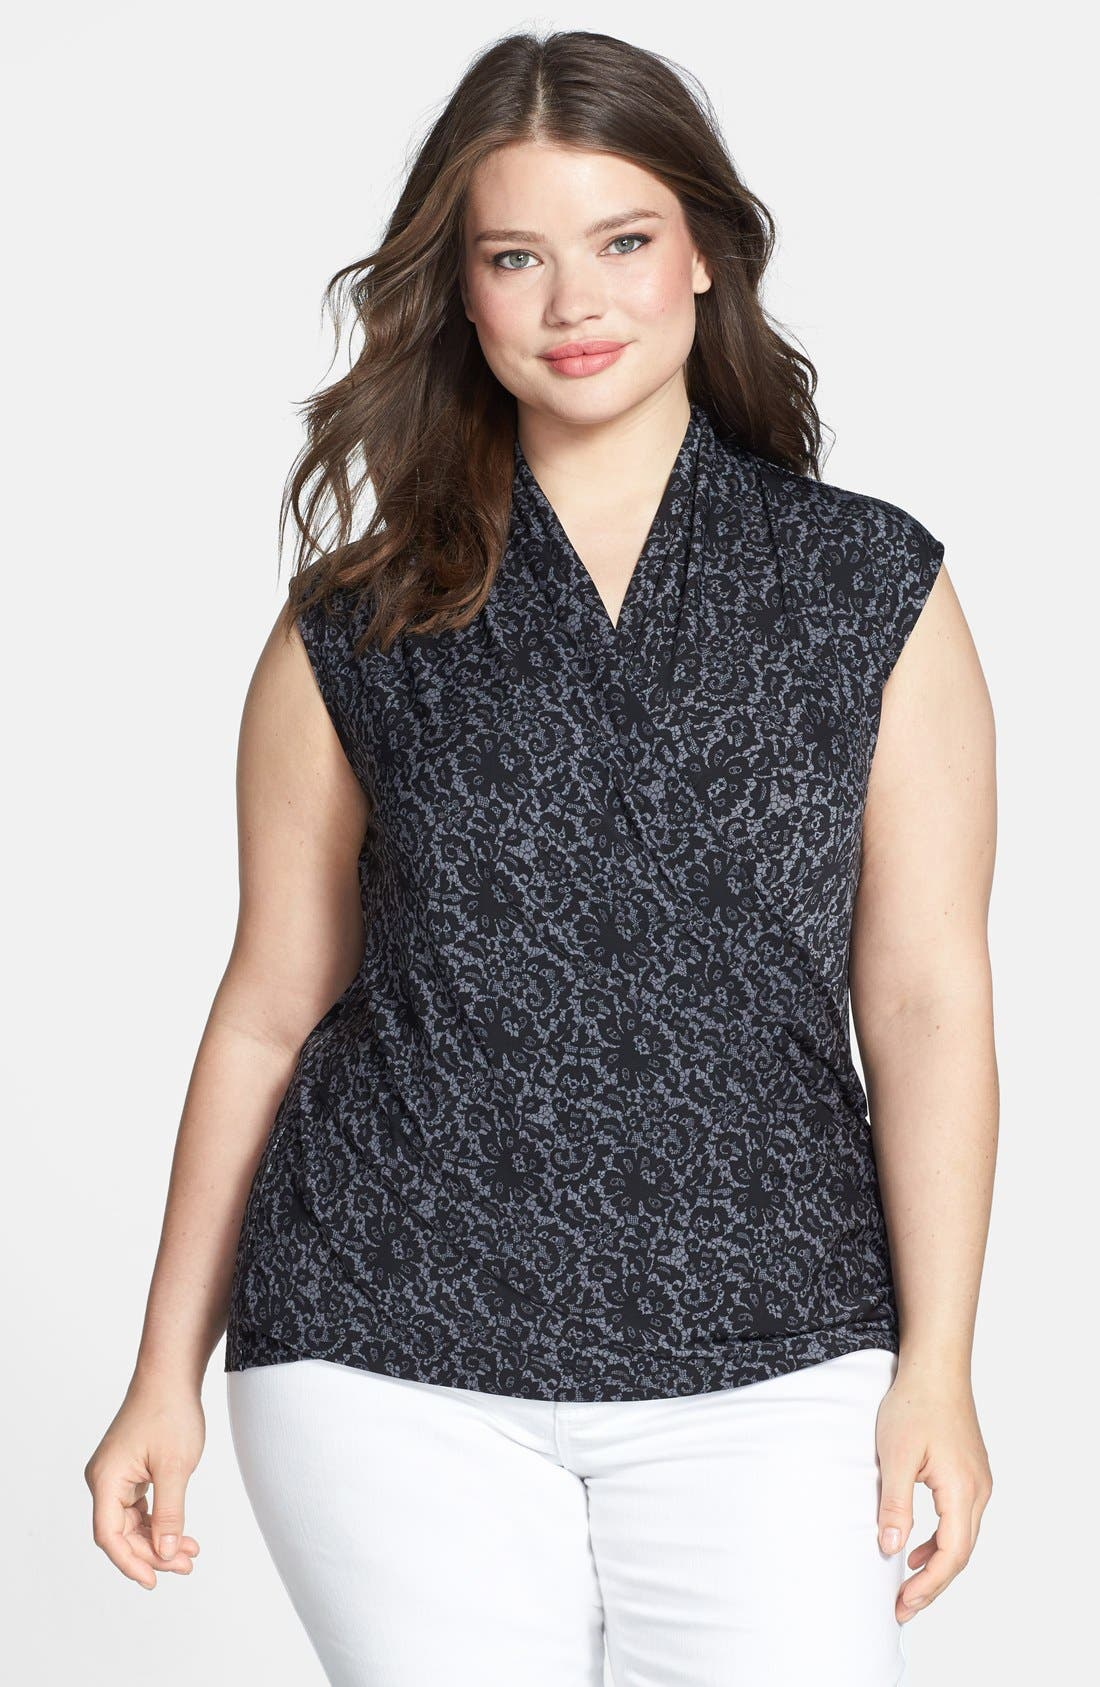 Alternate Image 1 Selected - Vince Camuto 'Chantilly' Lace Print V-Neck Top (Plus Size)